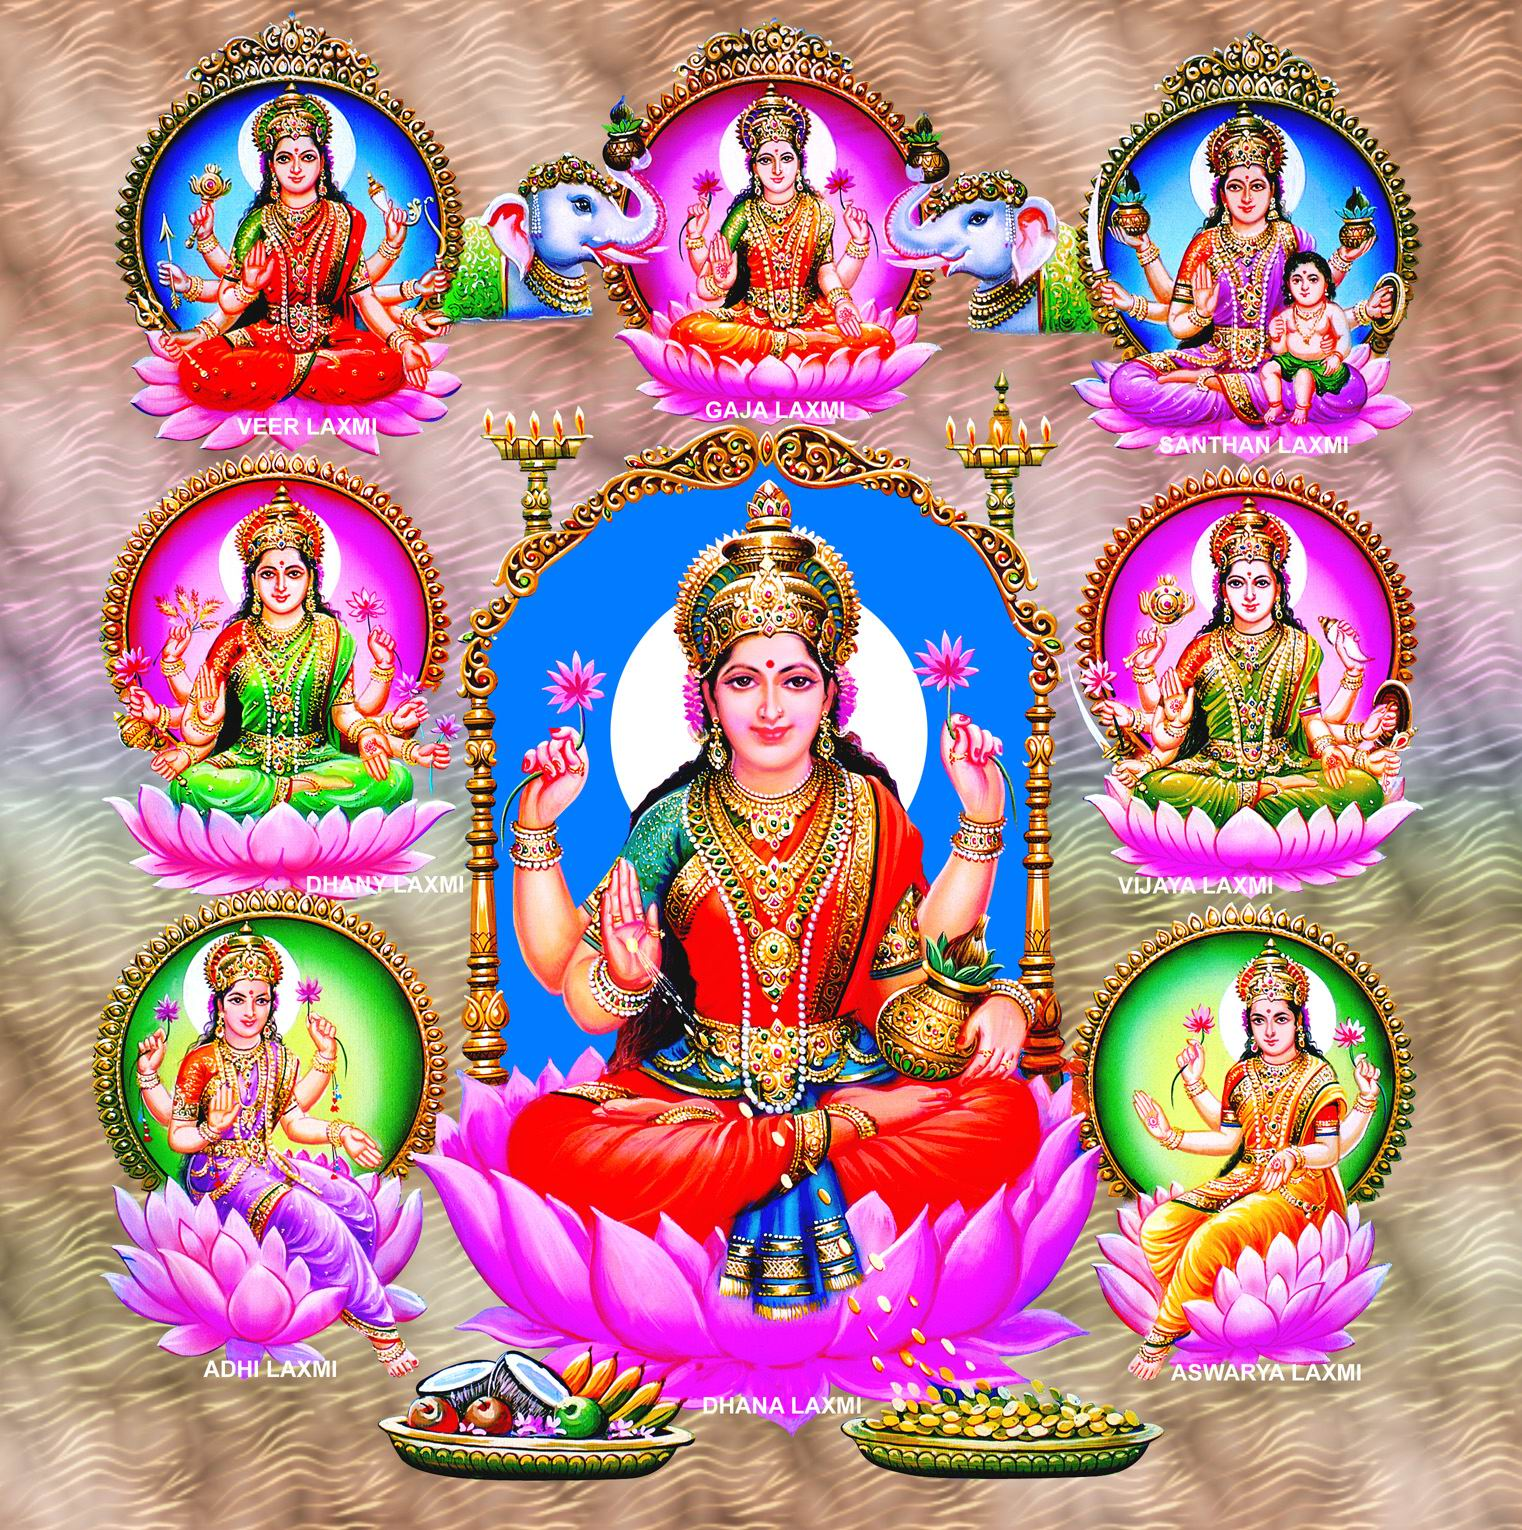 1000 Names of Goddess Lakshmi http://www.hindudevotionalblog.com/2013/01/goddess-ashta-lakshmi-pictures-download.html